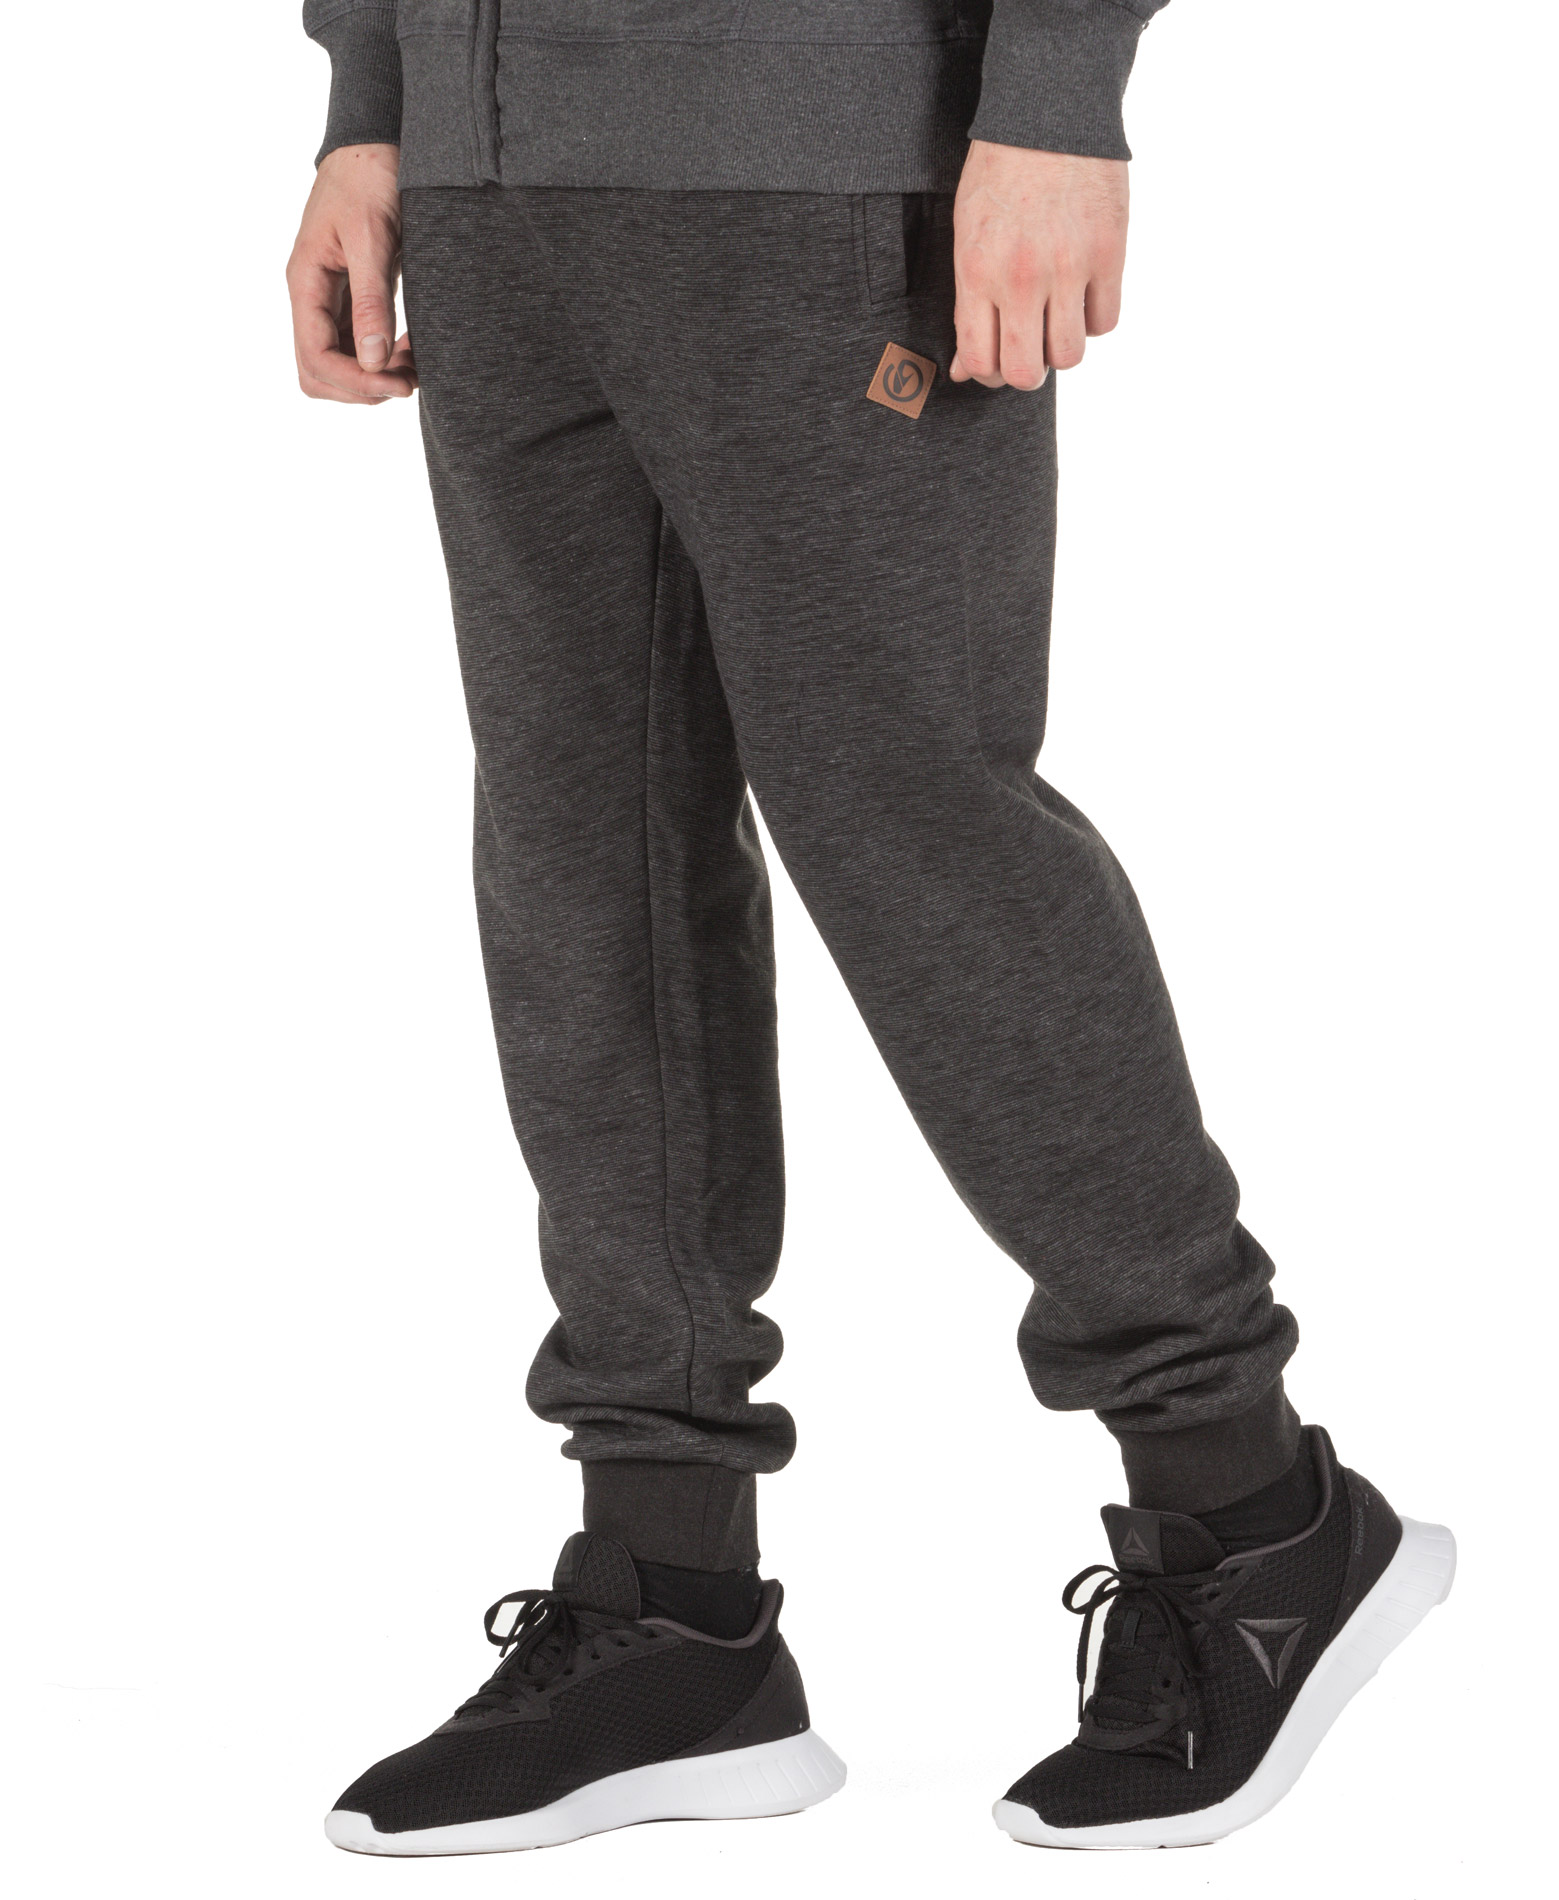 BODY ACTION SLIM FIT SWEAT PANTS 023944-01-01 Μαύρο